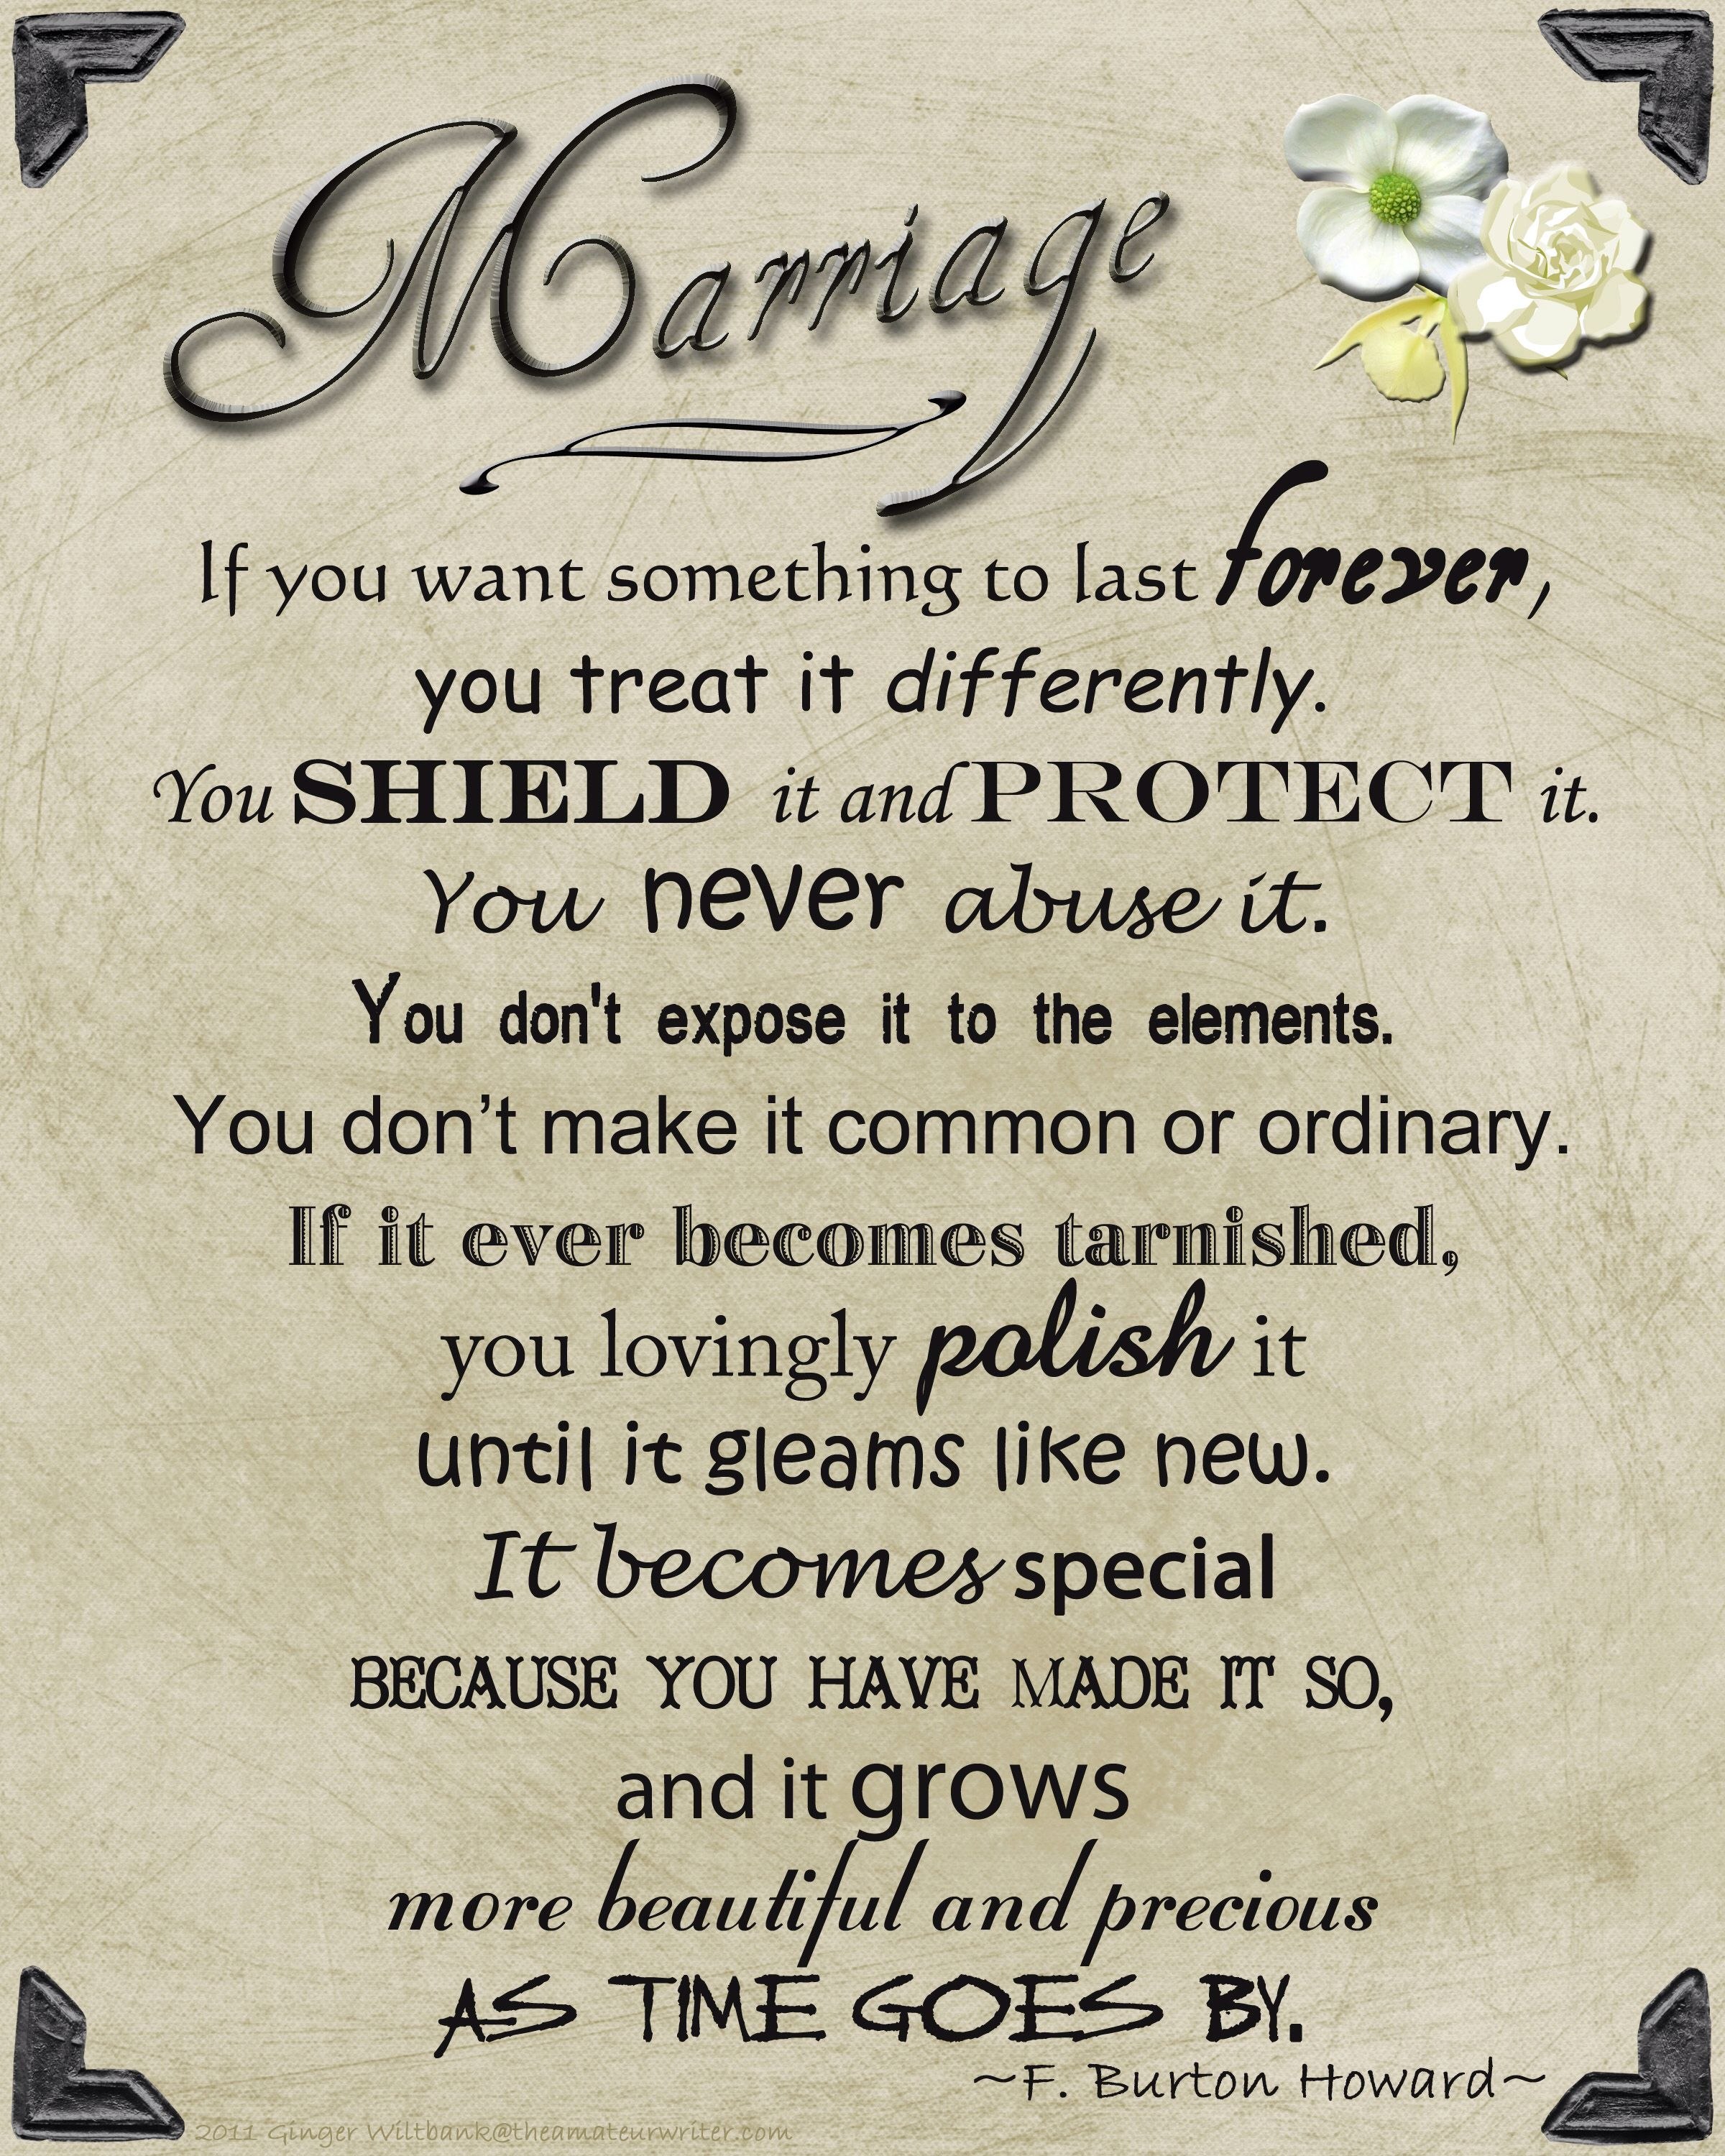 Marriage Poem For Legacy Table Where You Can Put Family Wedding Photos Marriage Quotes Words Of Wisdom Wise Words